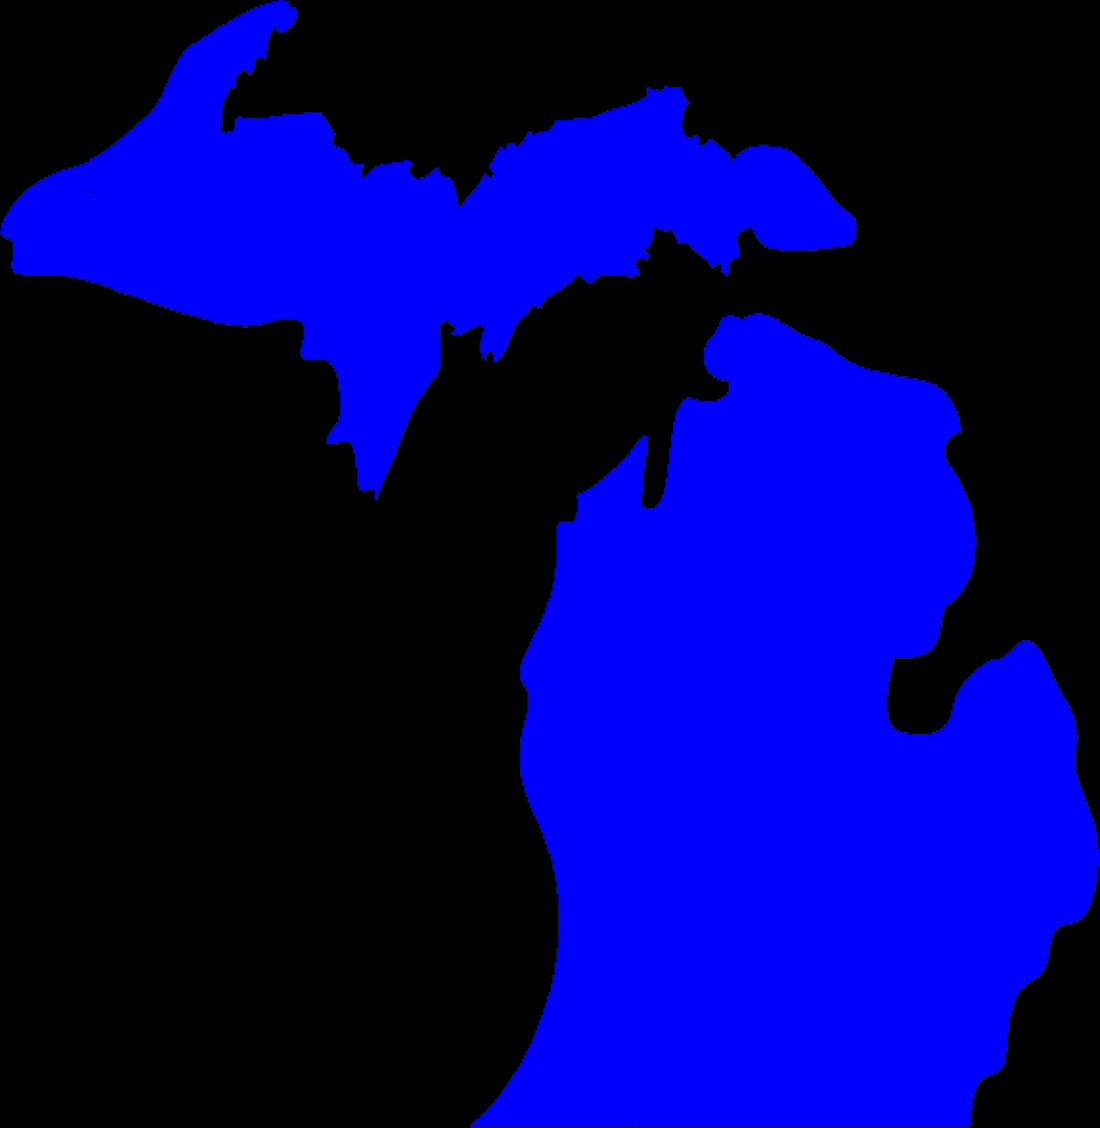 michigan-clipart-kcKnBpLgi.png